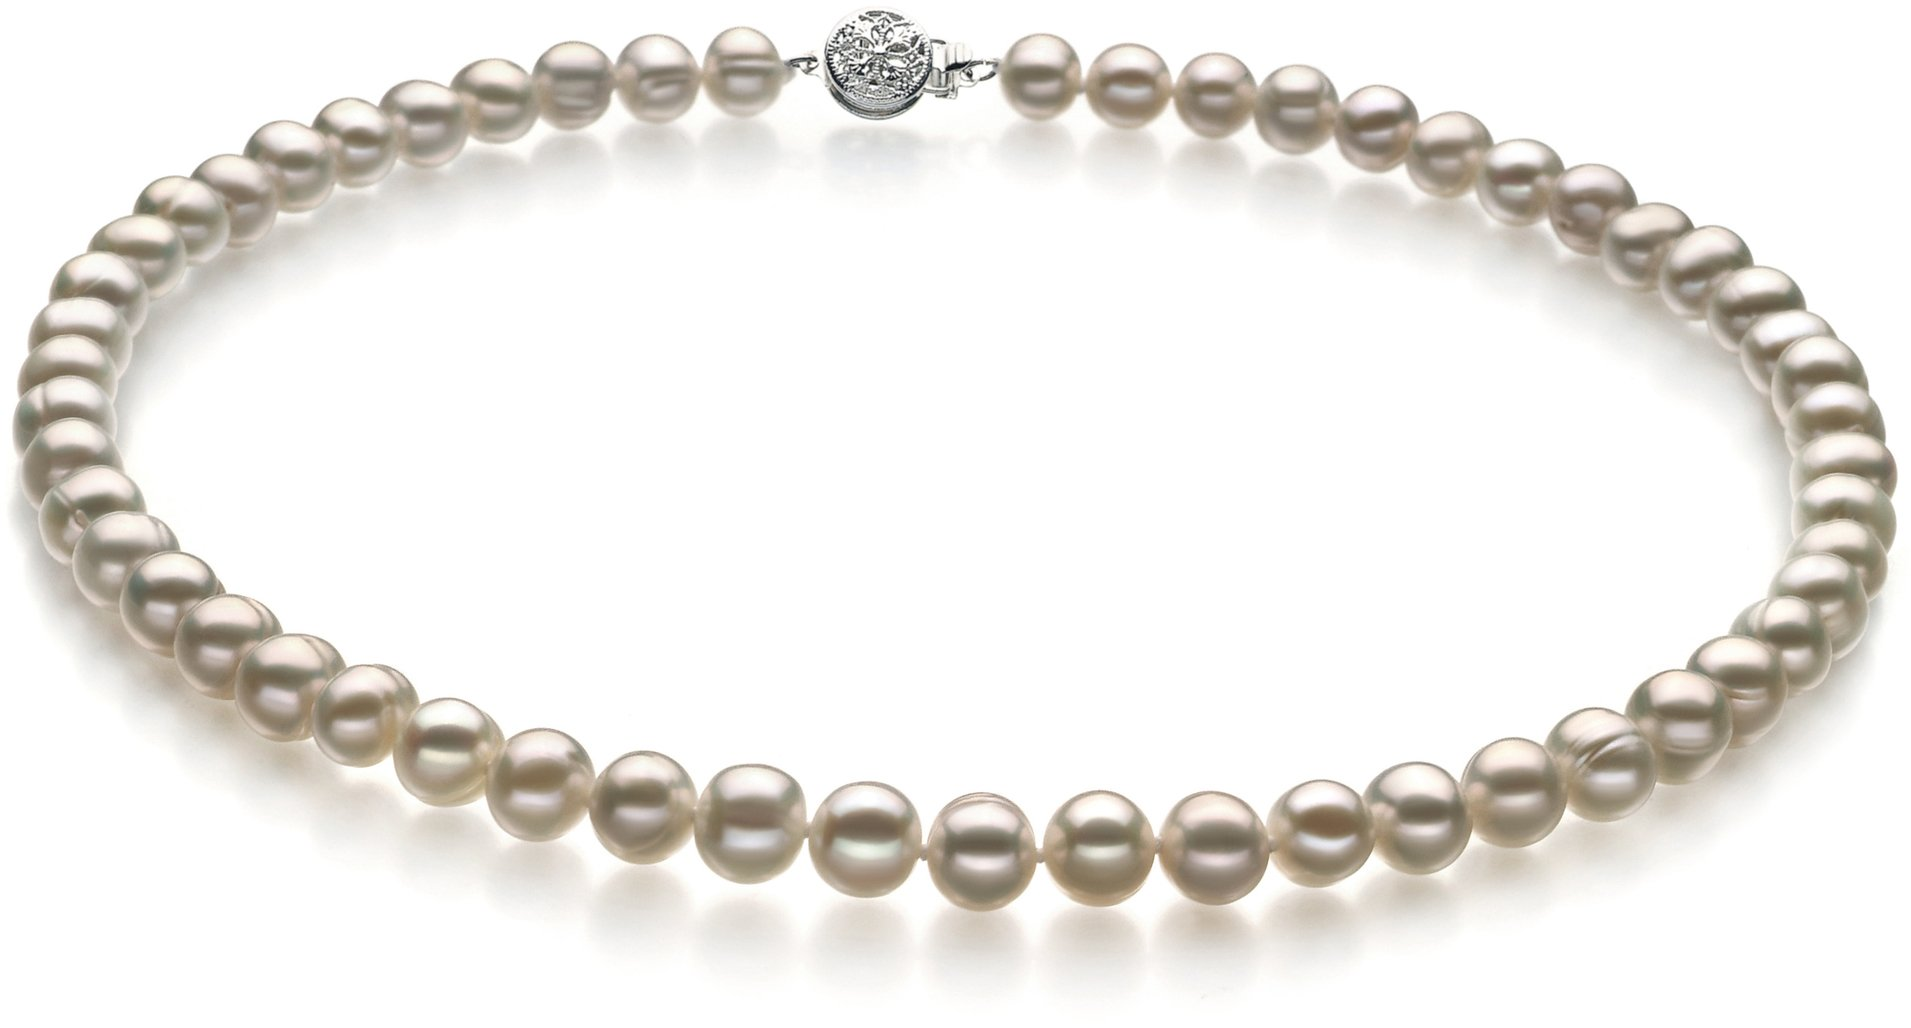 Bliss White 6-7mm A Quality Freshwater Cultured Pearl Necklace-18 in Princess length